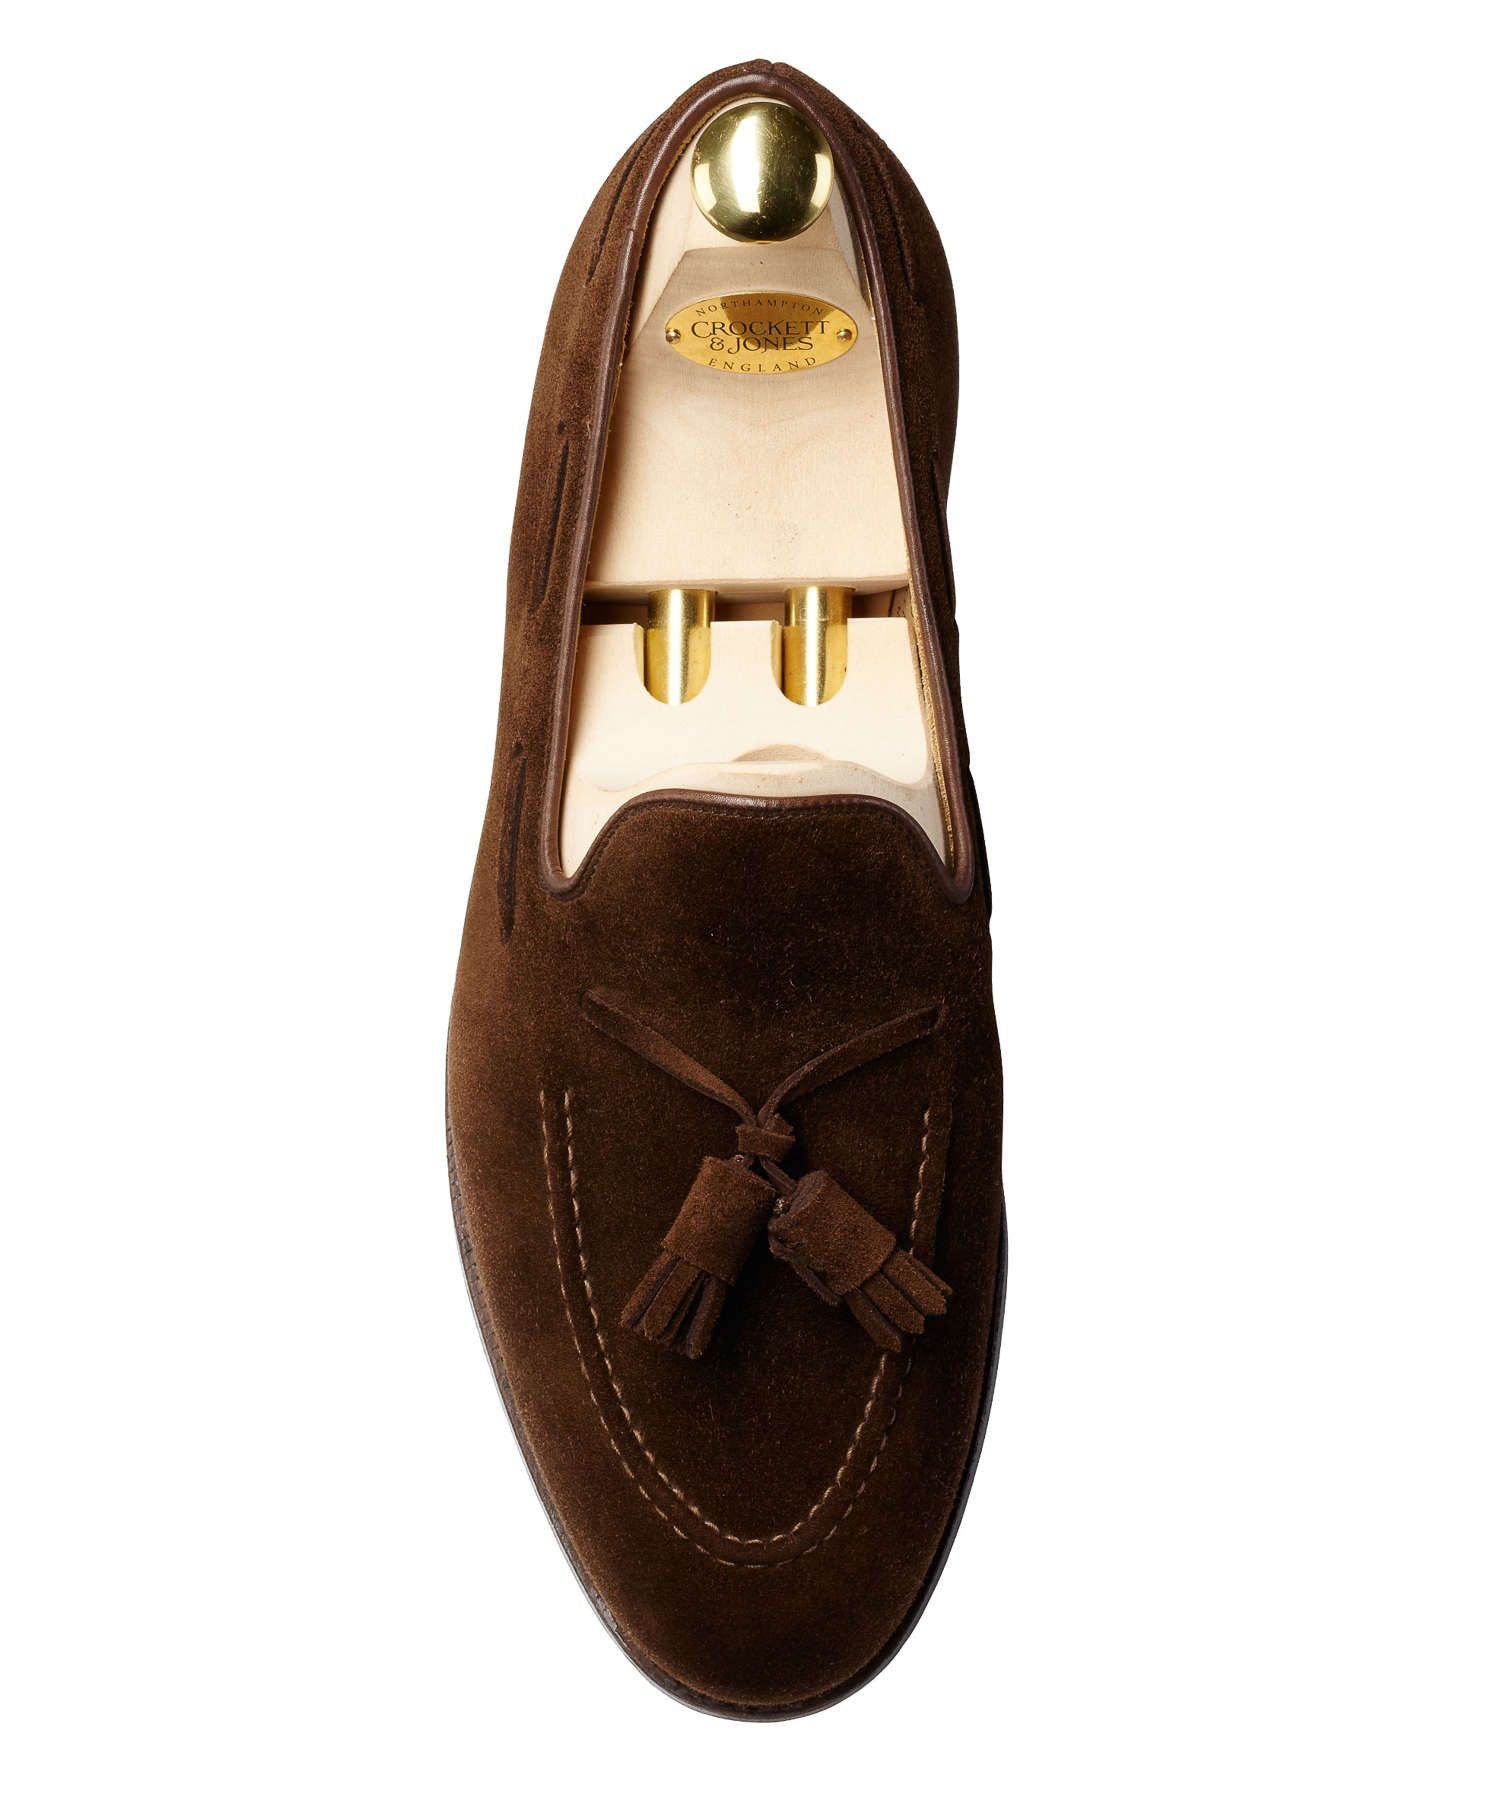 be4f68911af Made in England this classic tassel loafer is made from the finest suede  and single leather soles. - Goodyear welt - Stacked heel - Sole single  leather ...